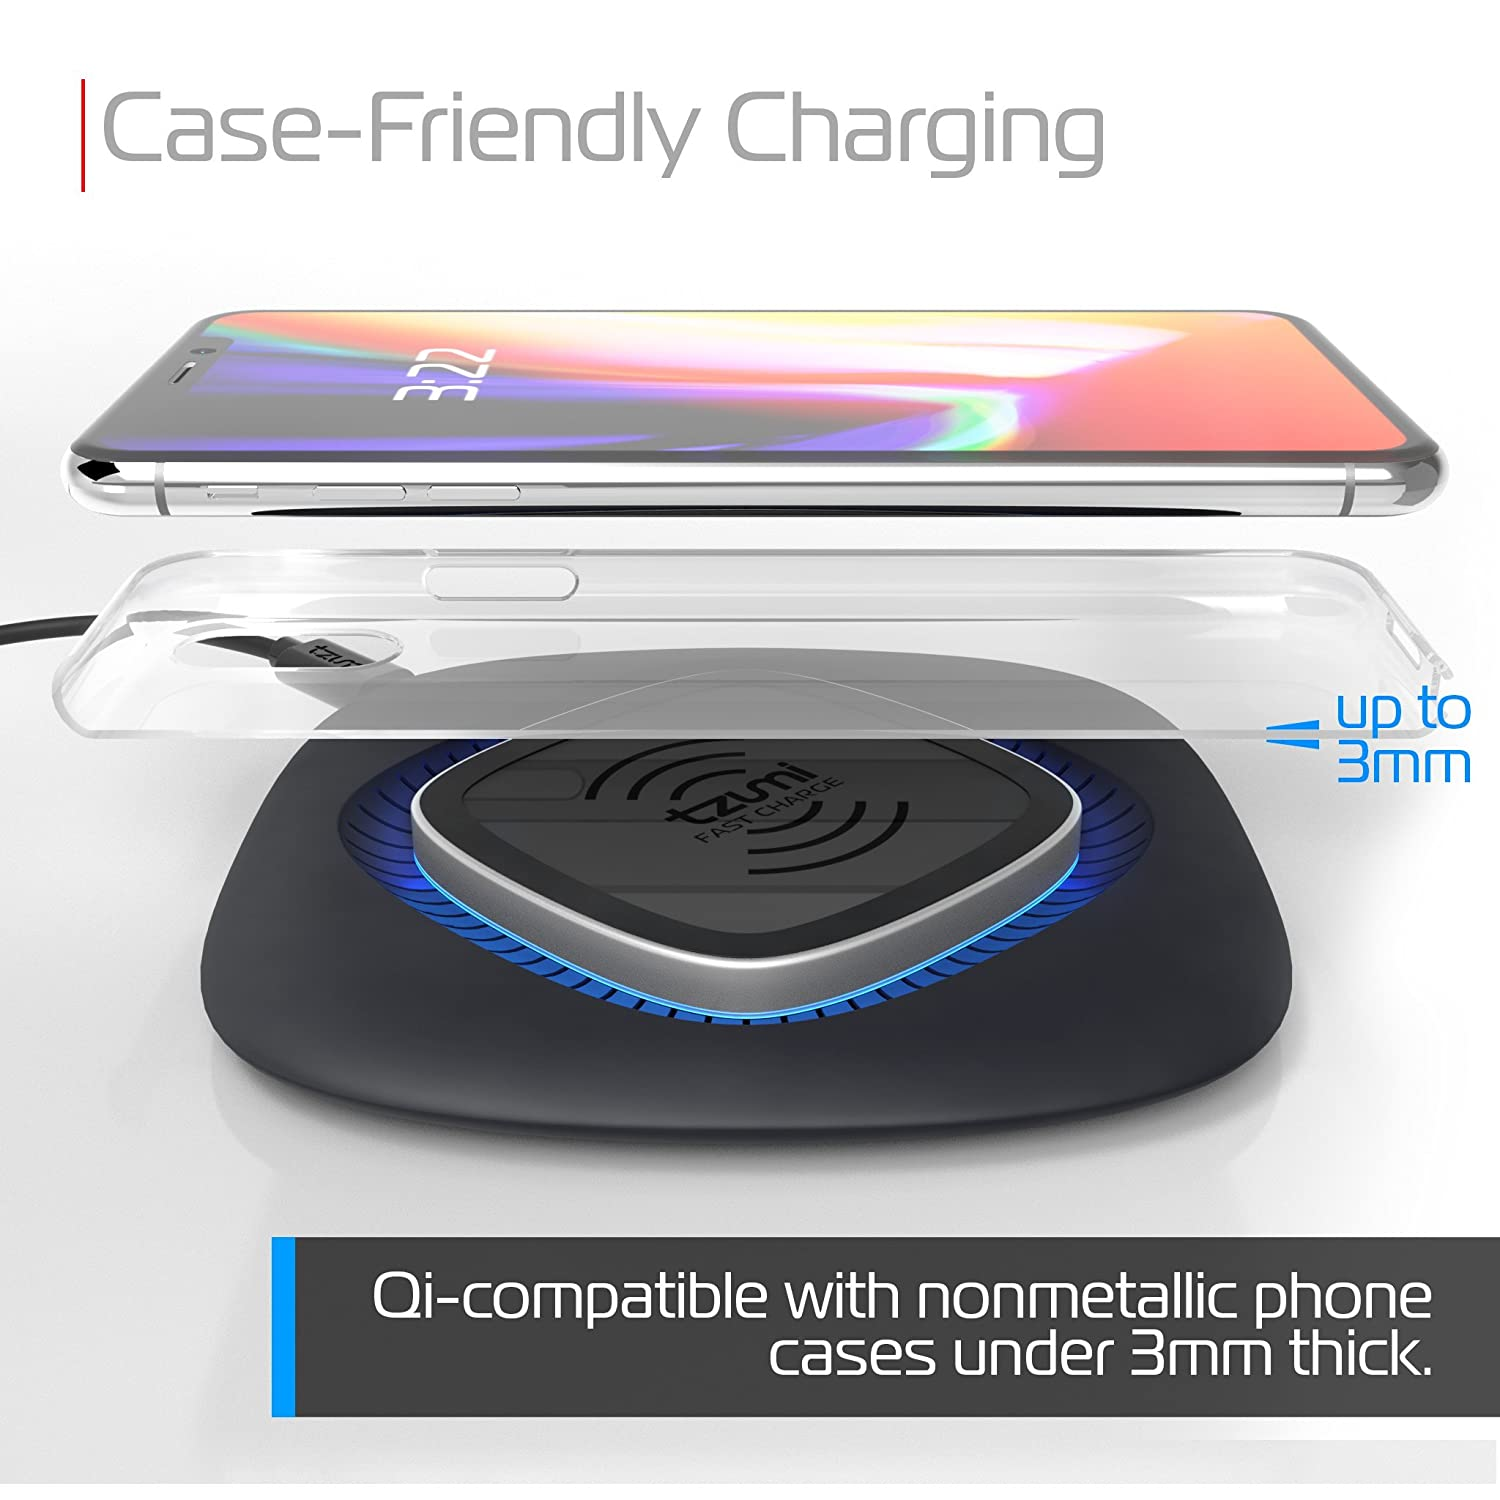 tzumi HyperCharge 10-Watt Wireless Fast Charger Pad for Qi-Compatible iPhones, Androids, and All Wireless Charging Smart Devices – for Home and ...